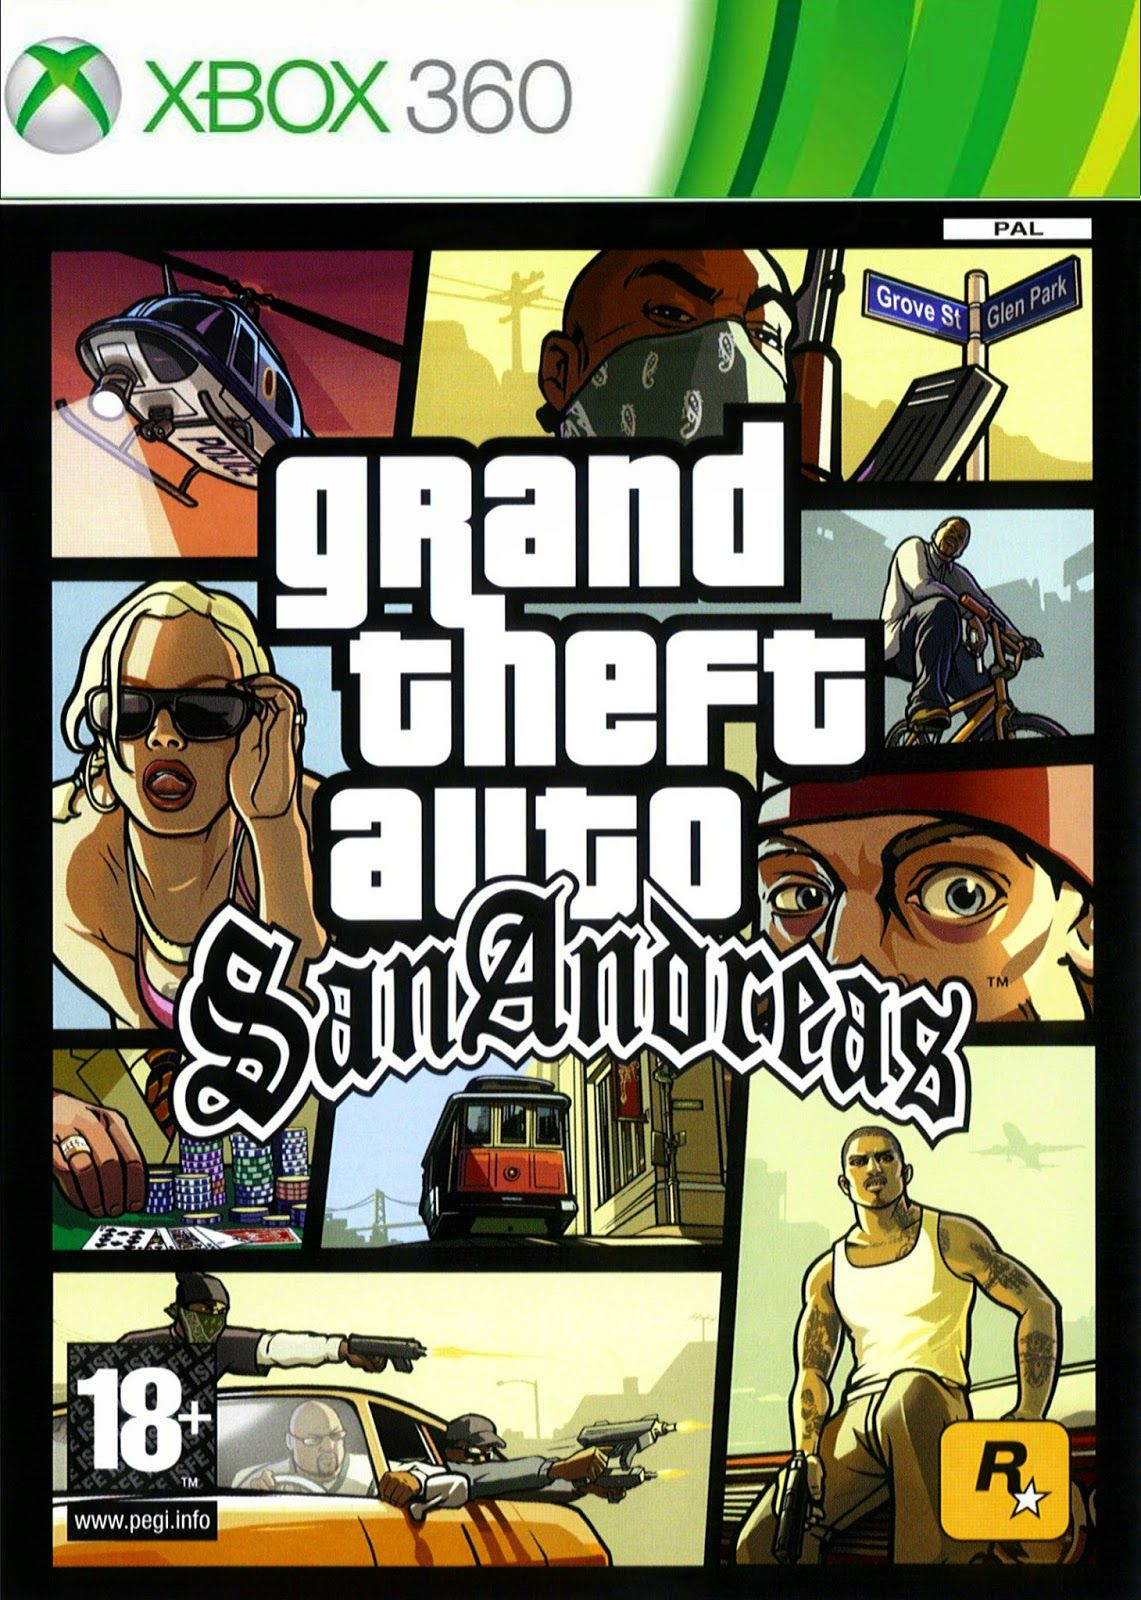 How To Get Gta San Andreas On Xbox 360